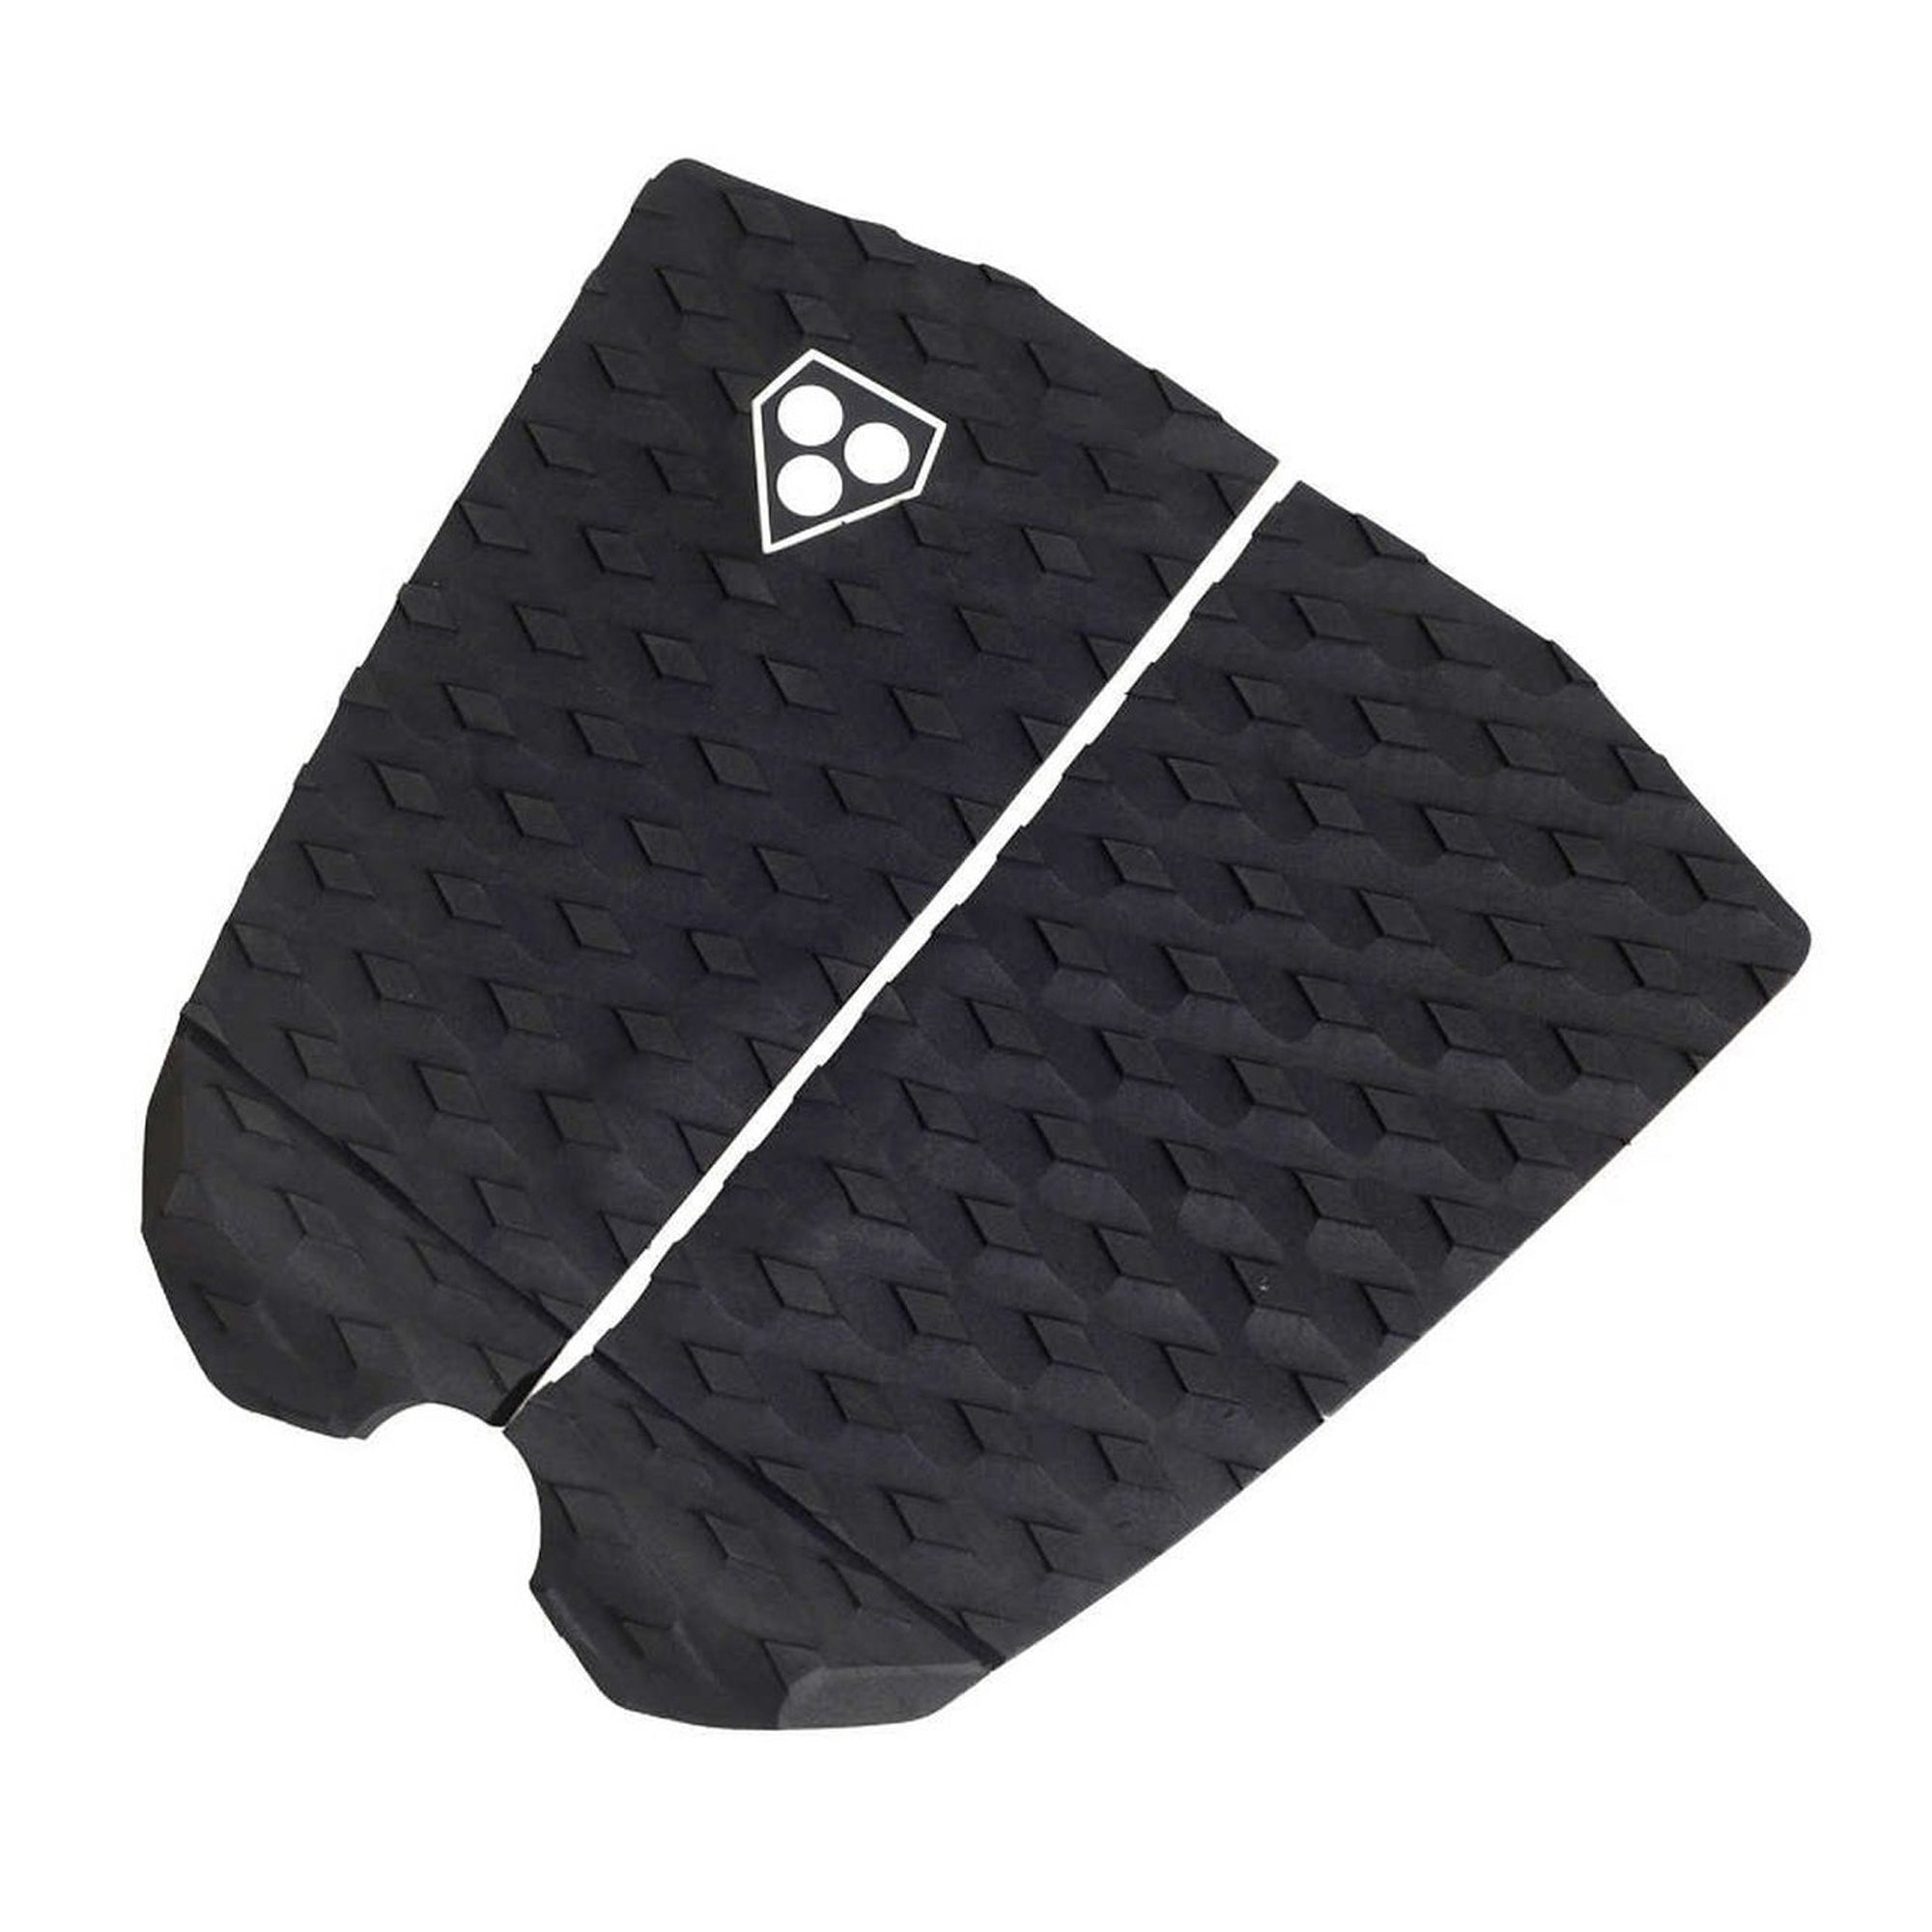 Gorilla Grip Phat Two Piece Flat Traction Pad